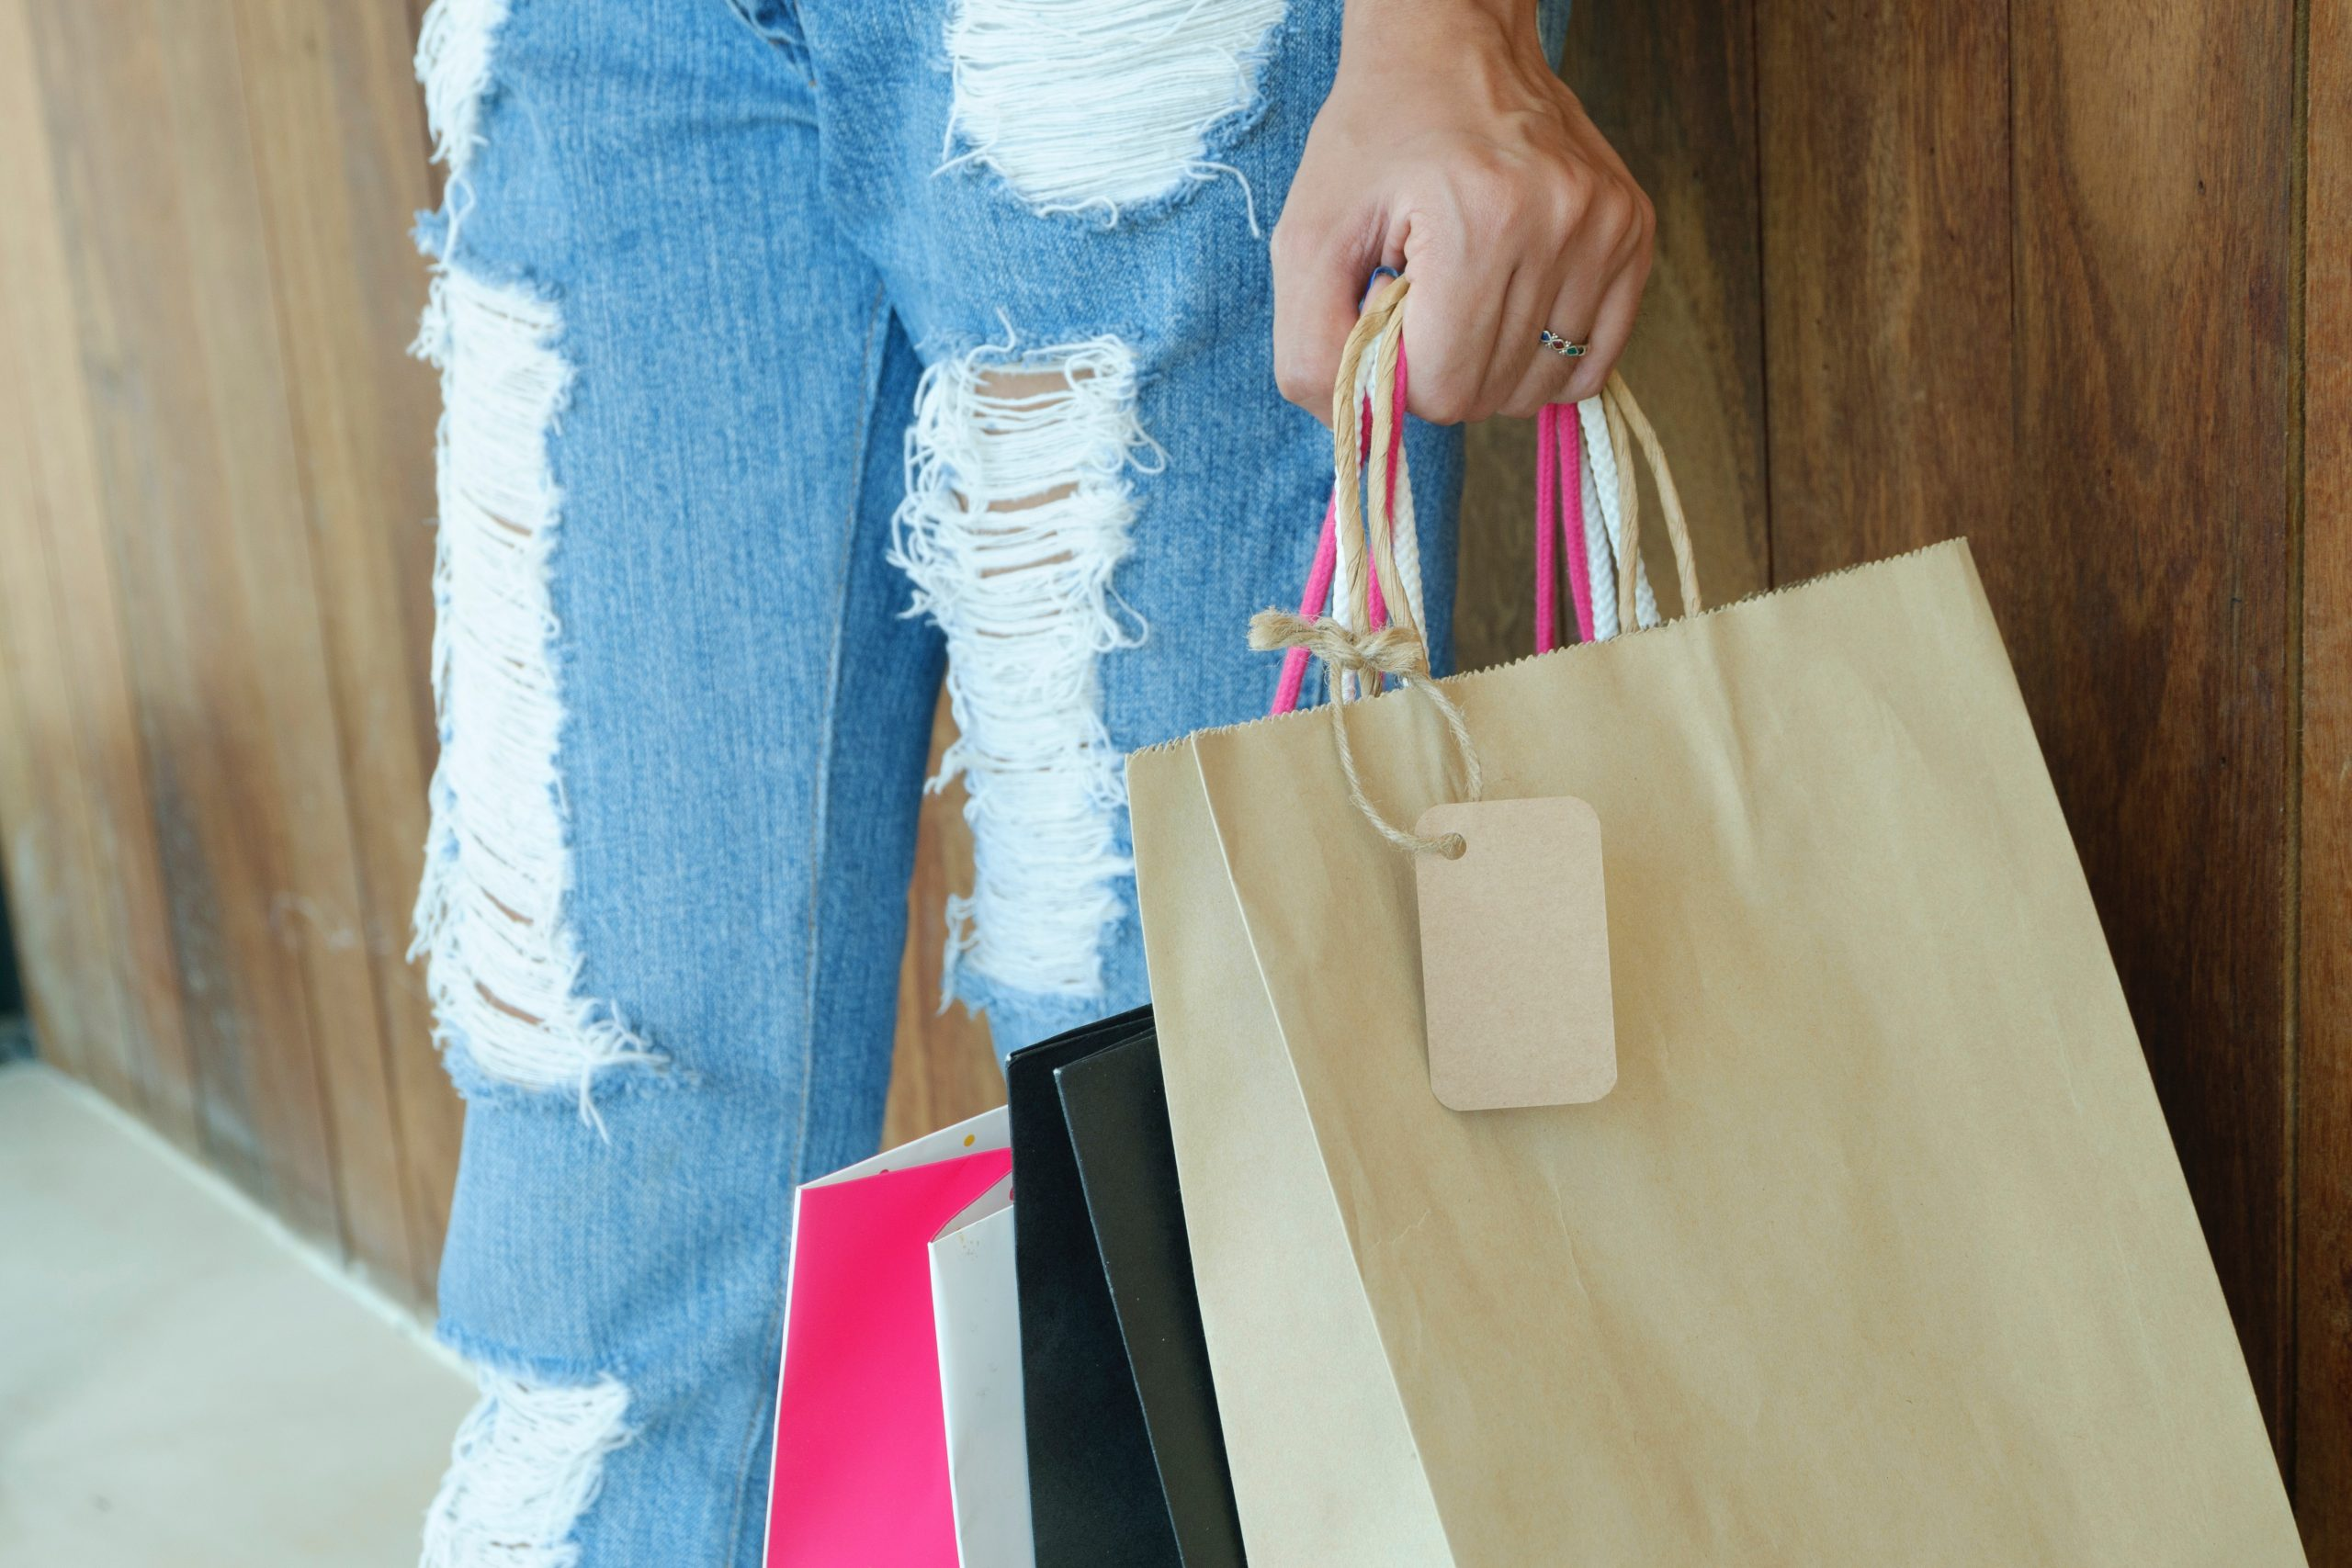 a person in distressed jeans holding shopping bags.